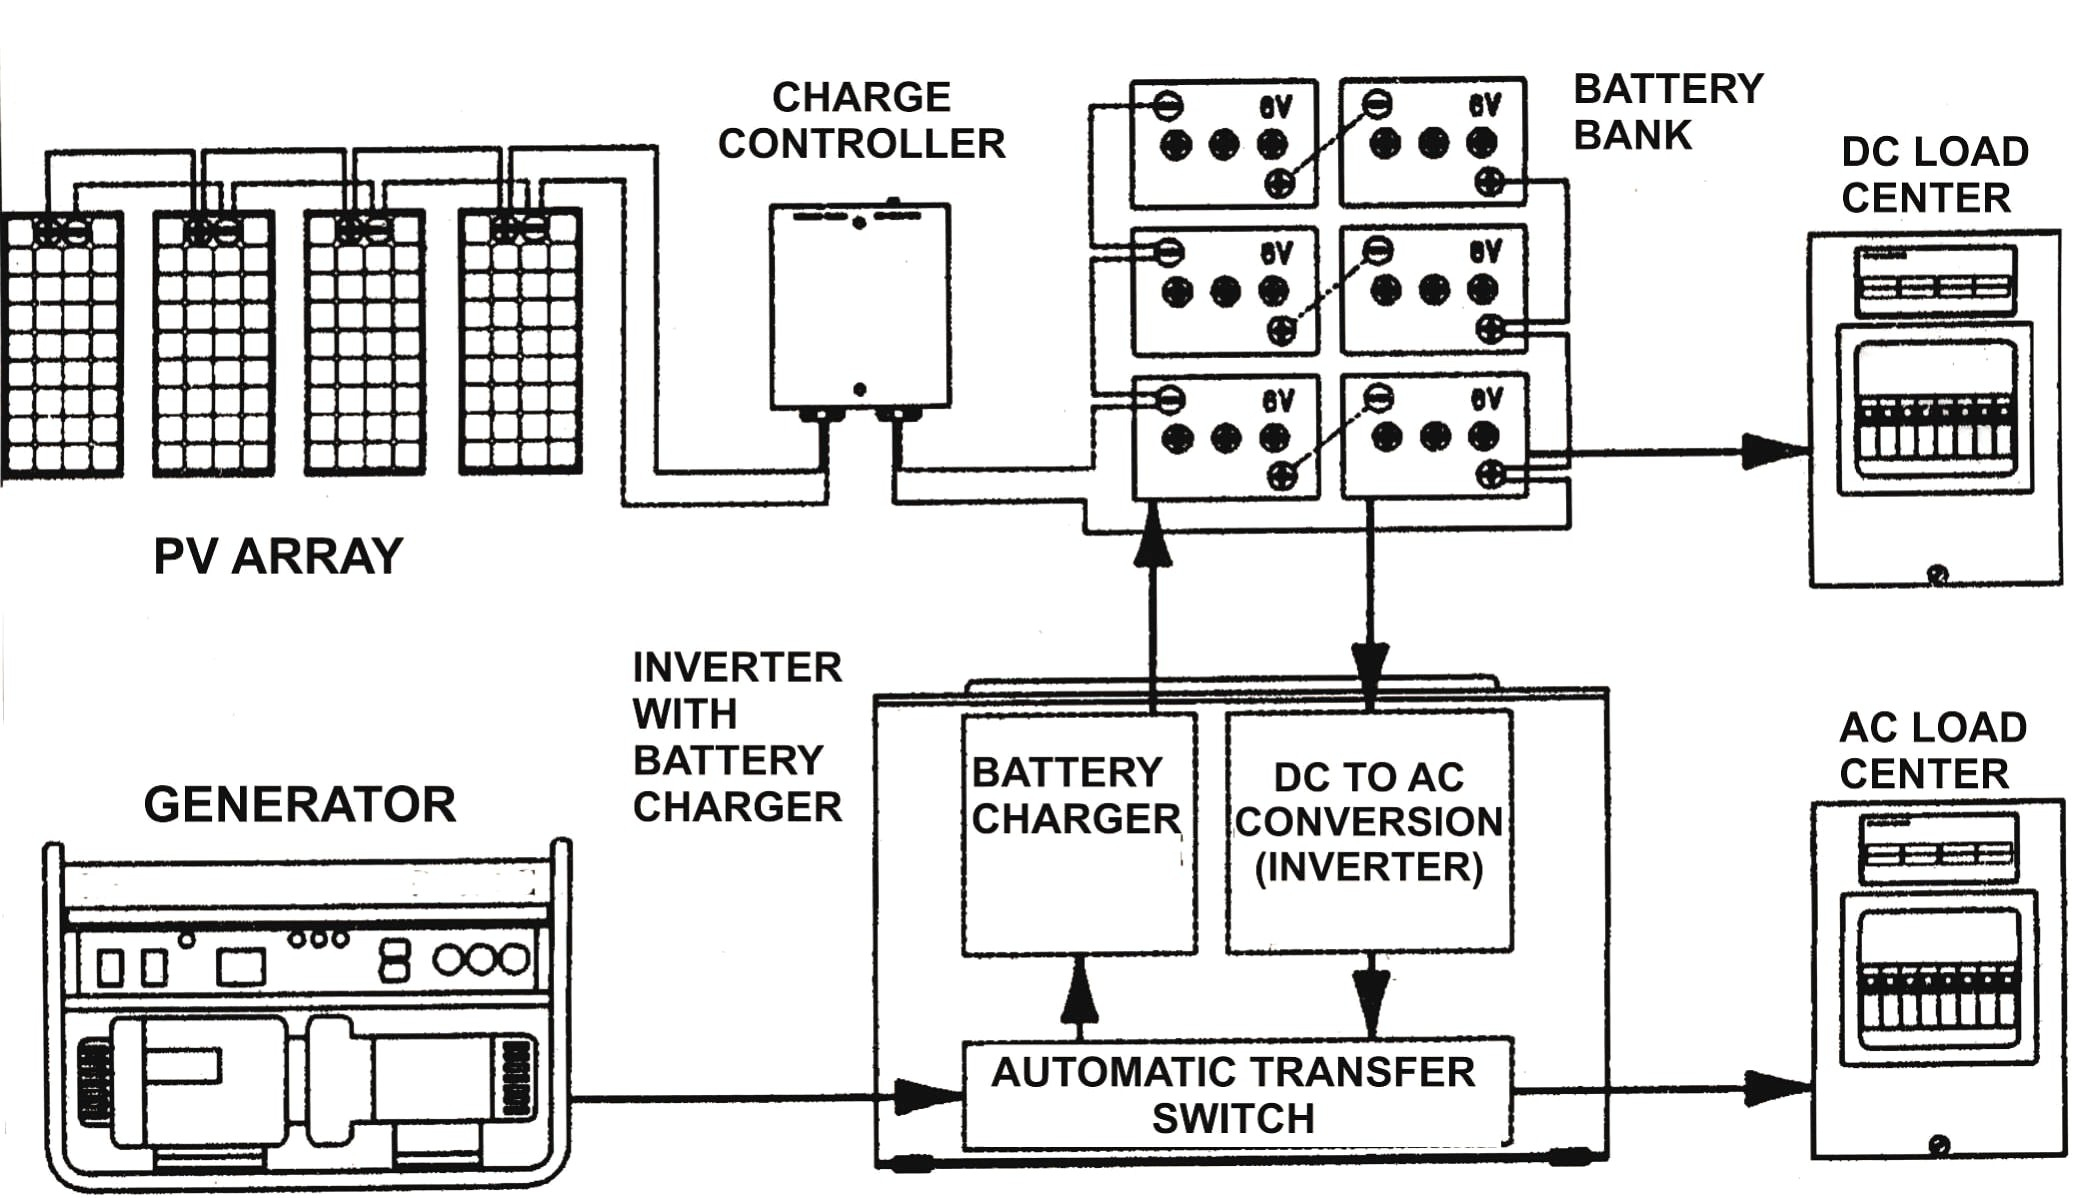 Rv Inverter Charger Wiring Diagram Sample For Download Converter 19 Q